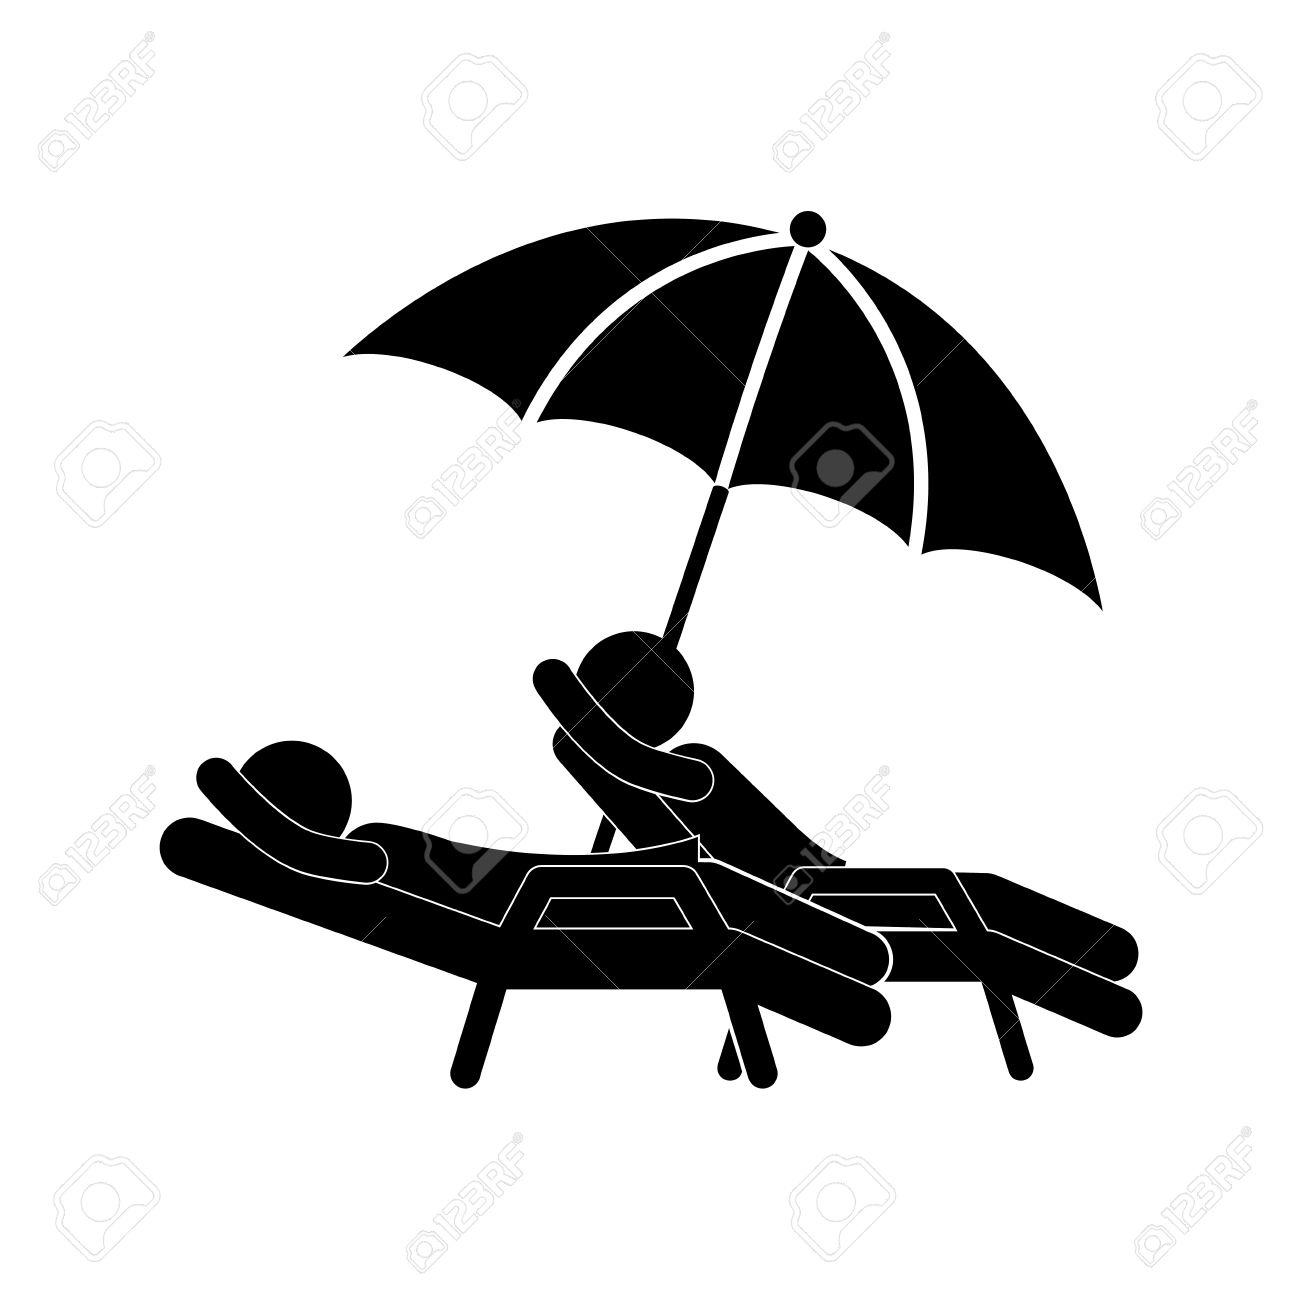 silhouette people in beach chair with umbrella vector illustration